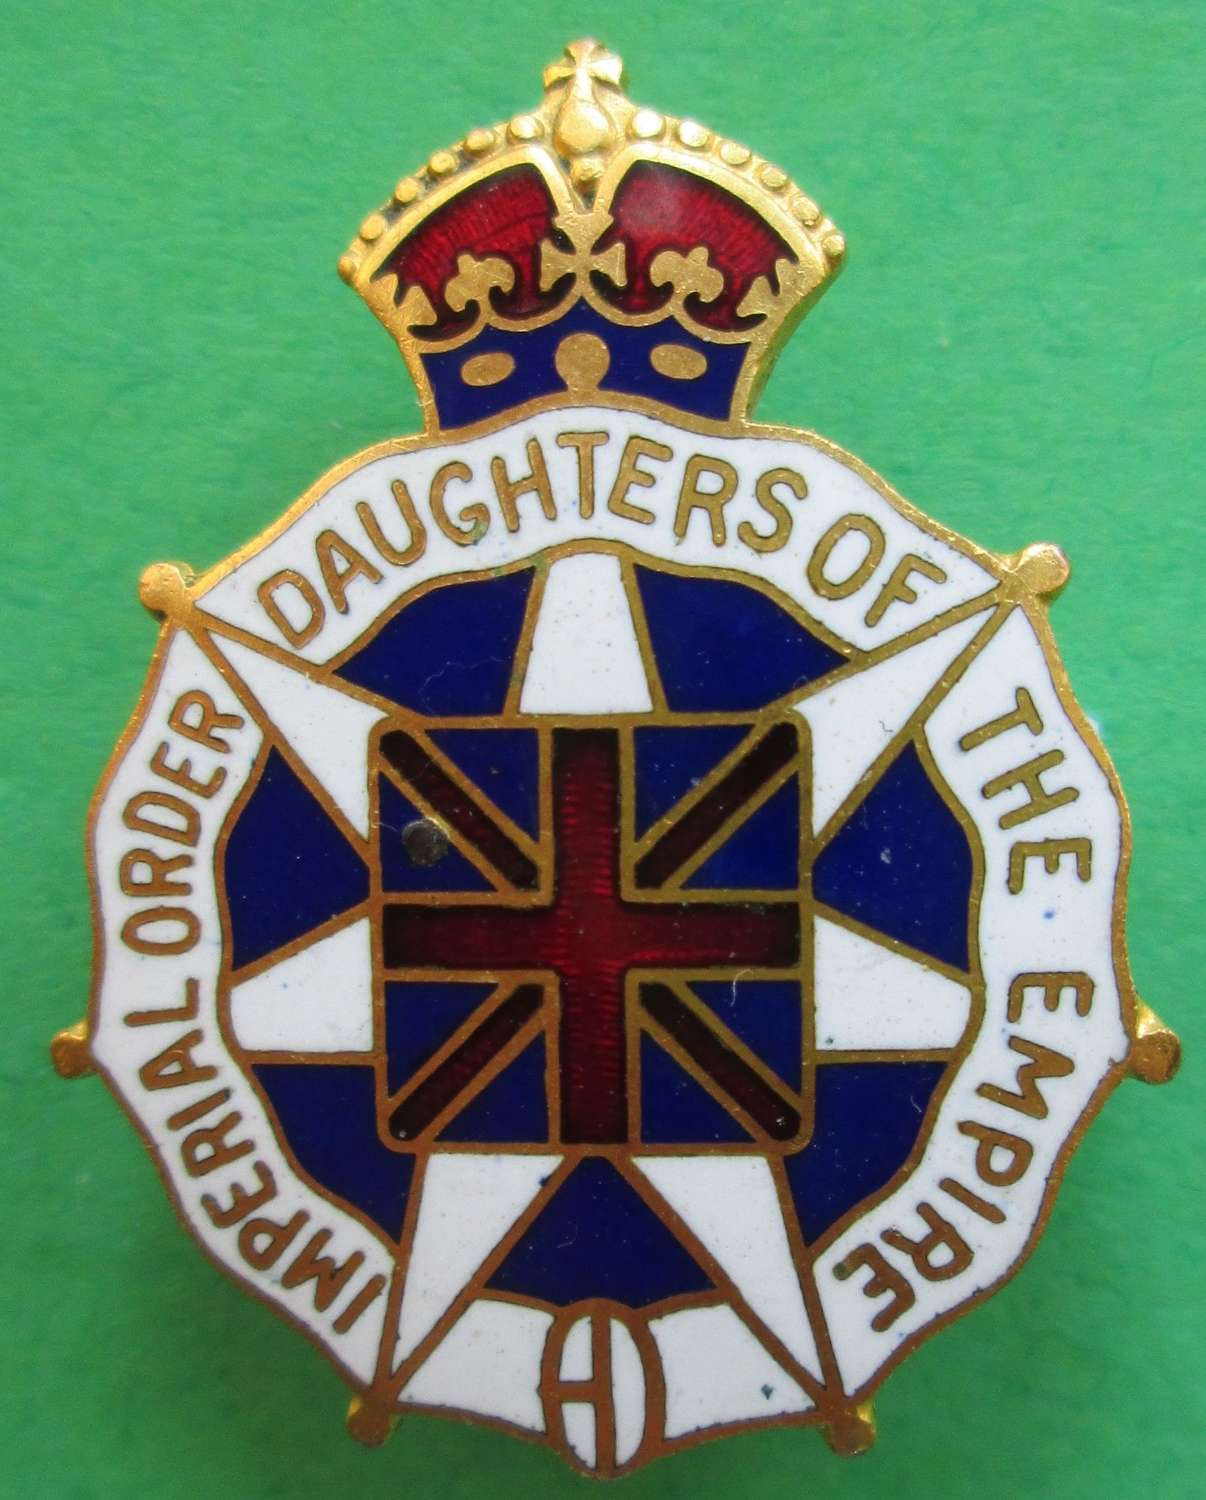 PIN BROOCH IMPERIAL ORDER DAUGHTERS OF THE EMPIRE